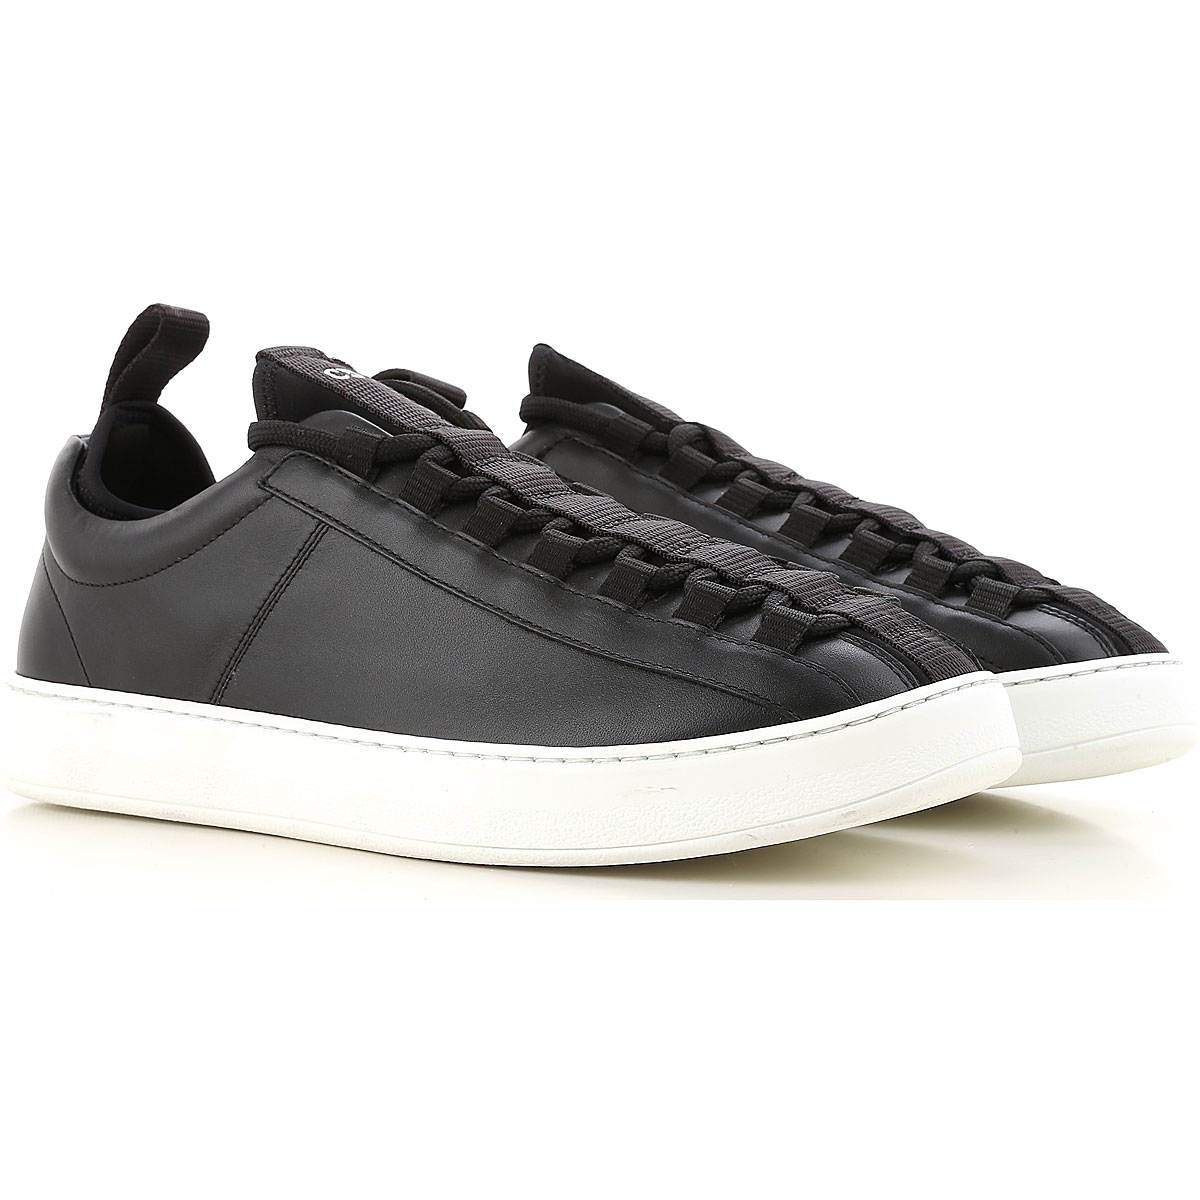 Image of Christian Dior Slip on Sneakers for Men On Sale in Outlet, Black, Leather, 2017, 6.5 7.5 8.5 9.5